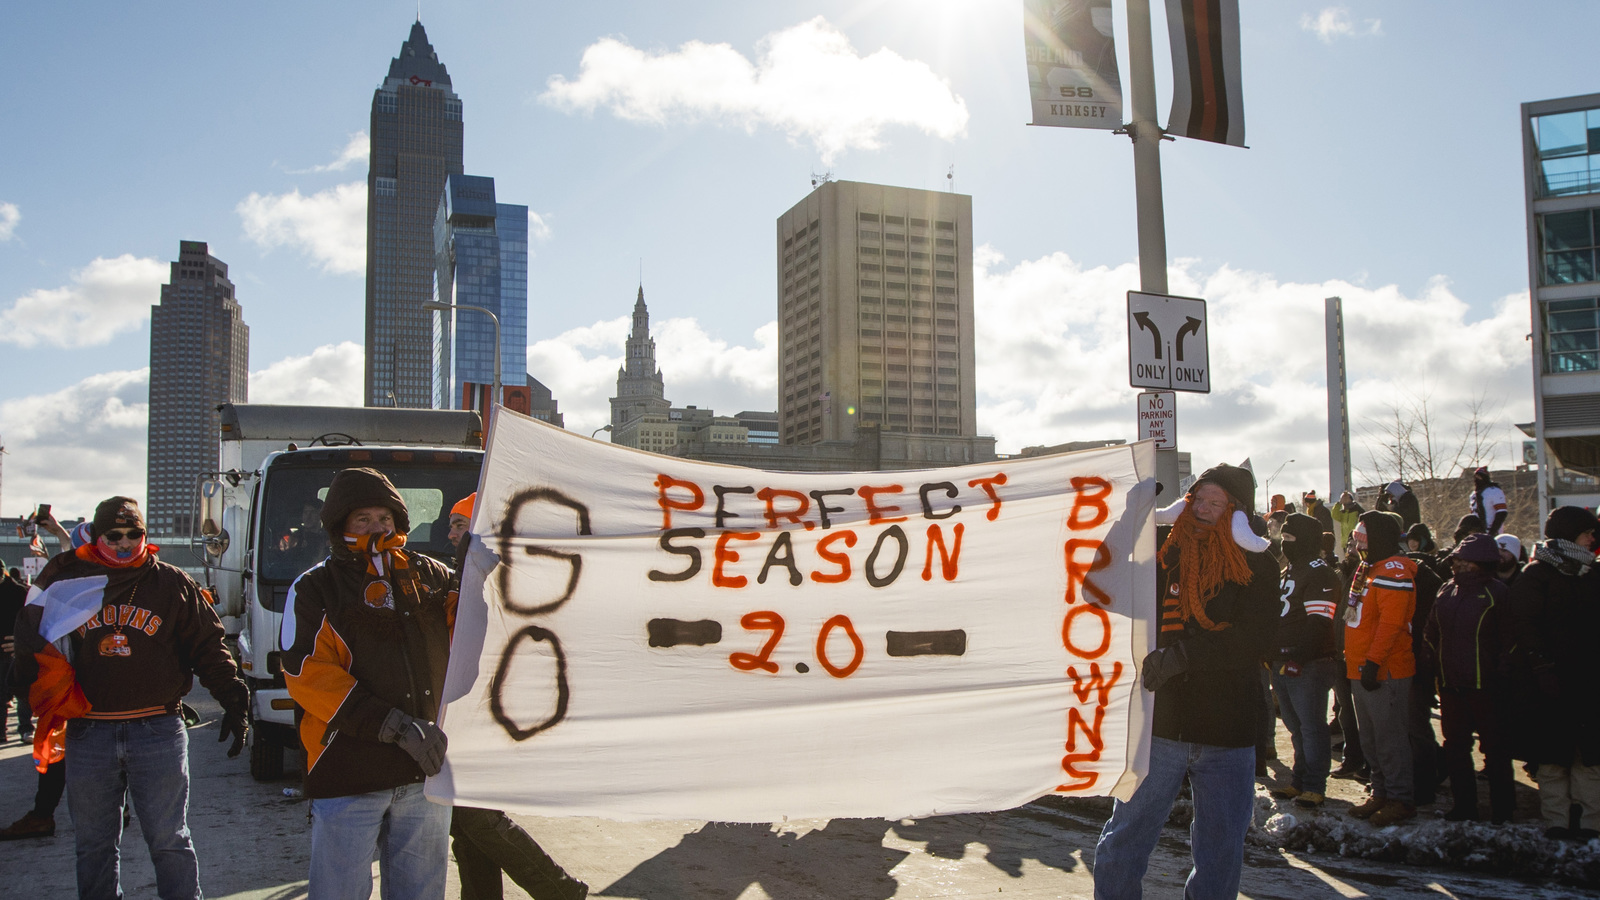 Scenes from the controversial Browns winless parade